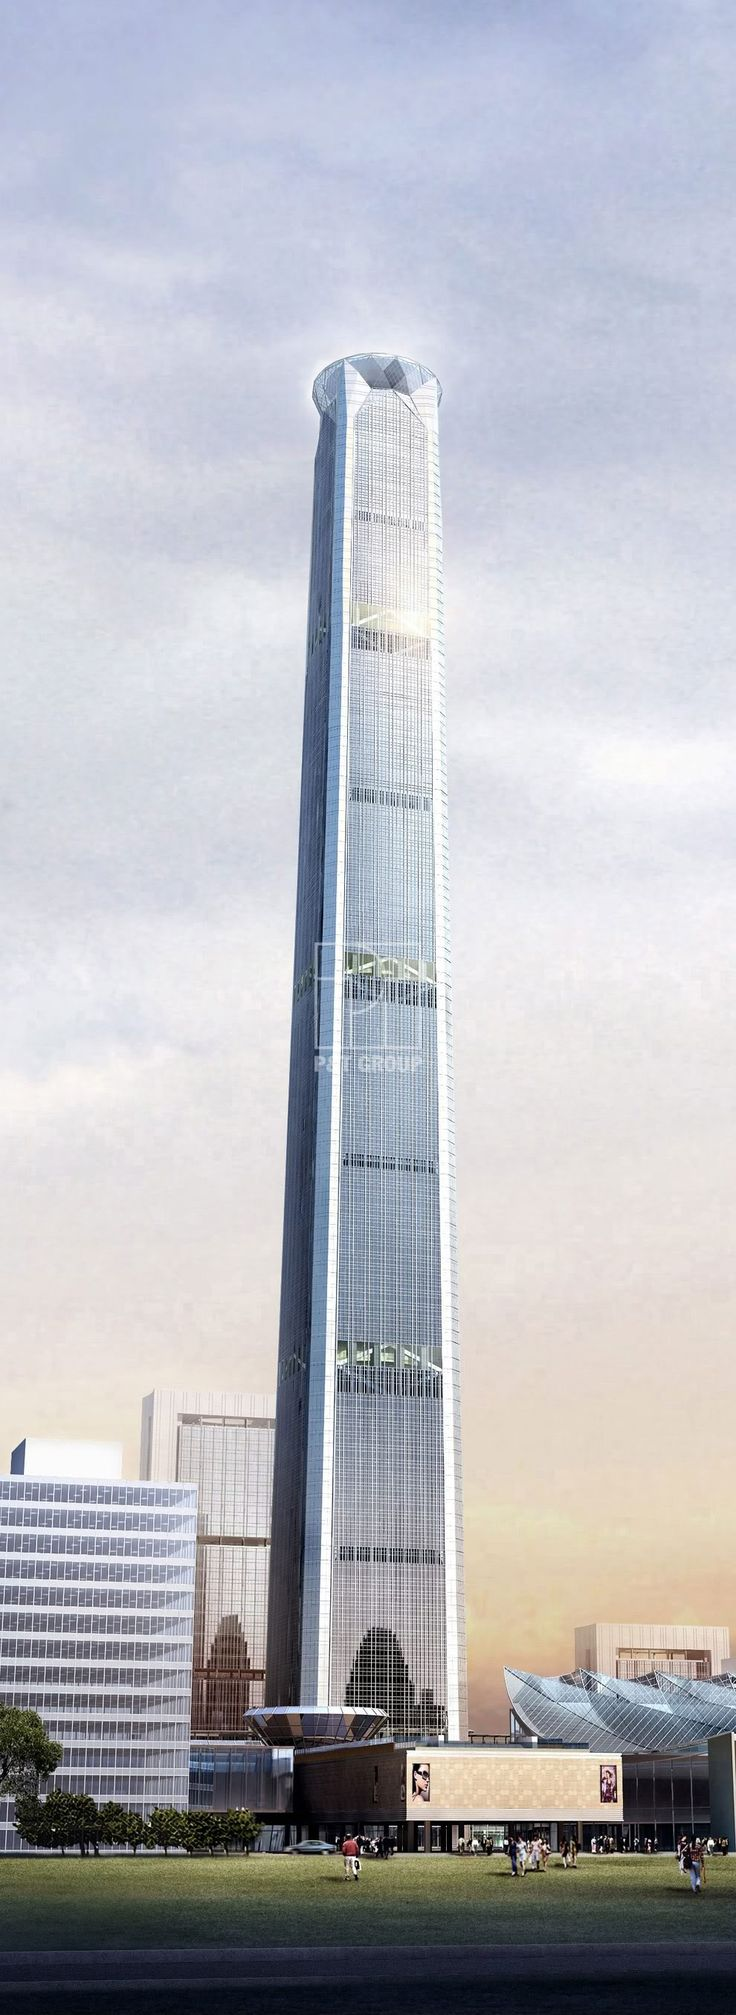 Goldin Finance 117,Tianjin - China, 597 m 1957ft,117 fl